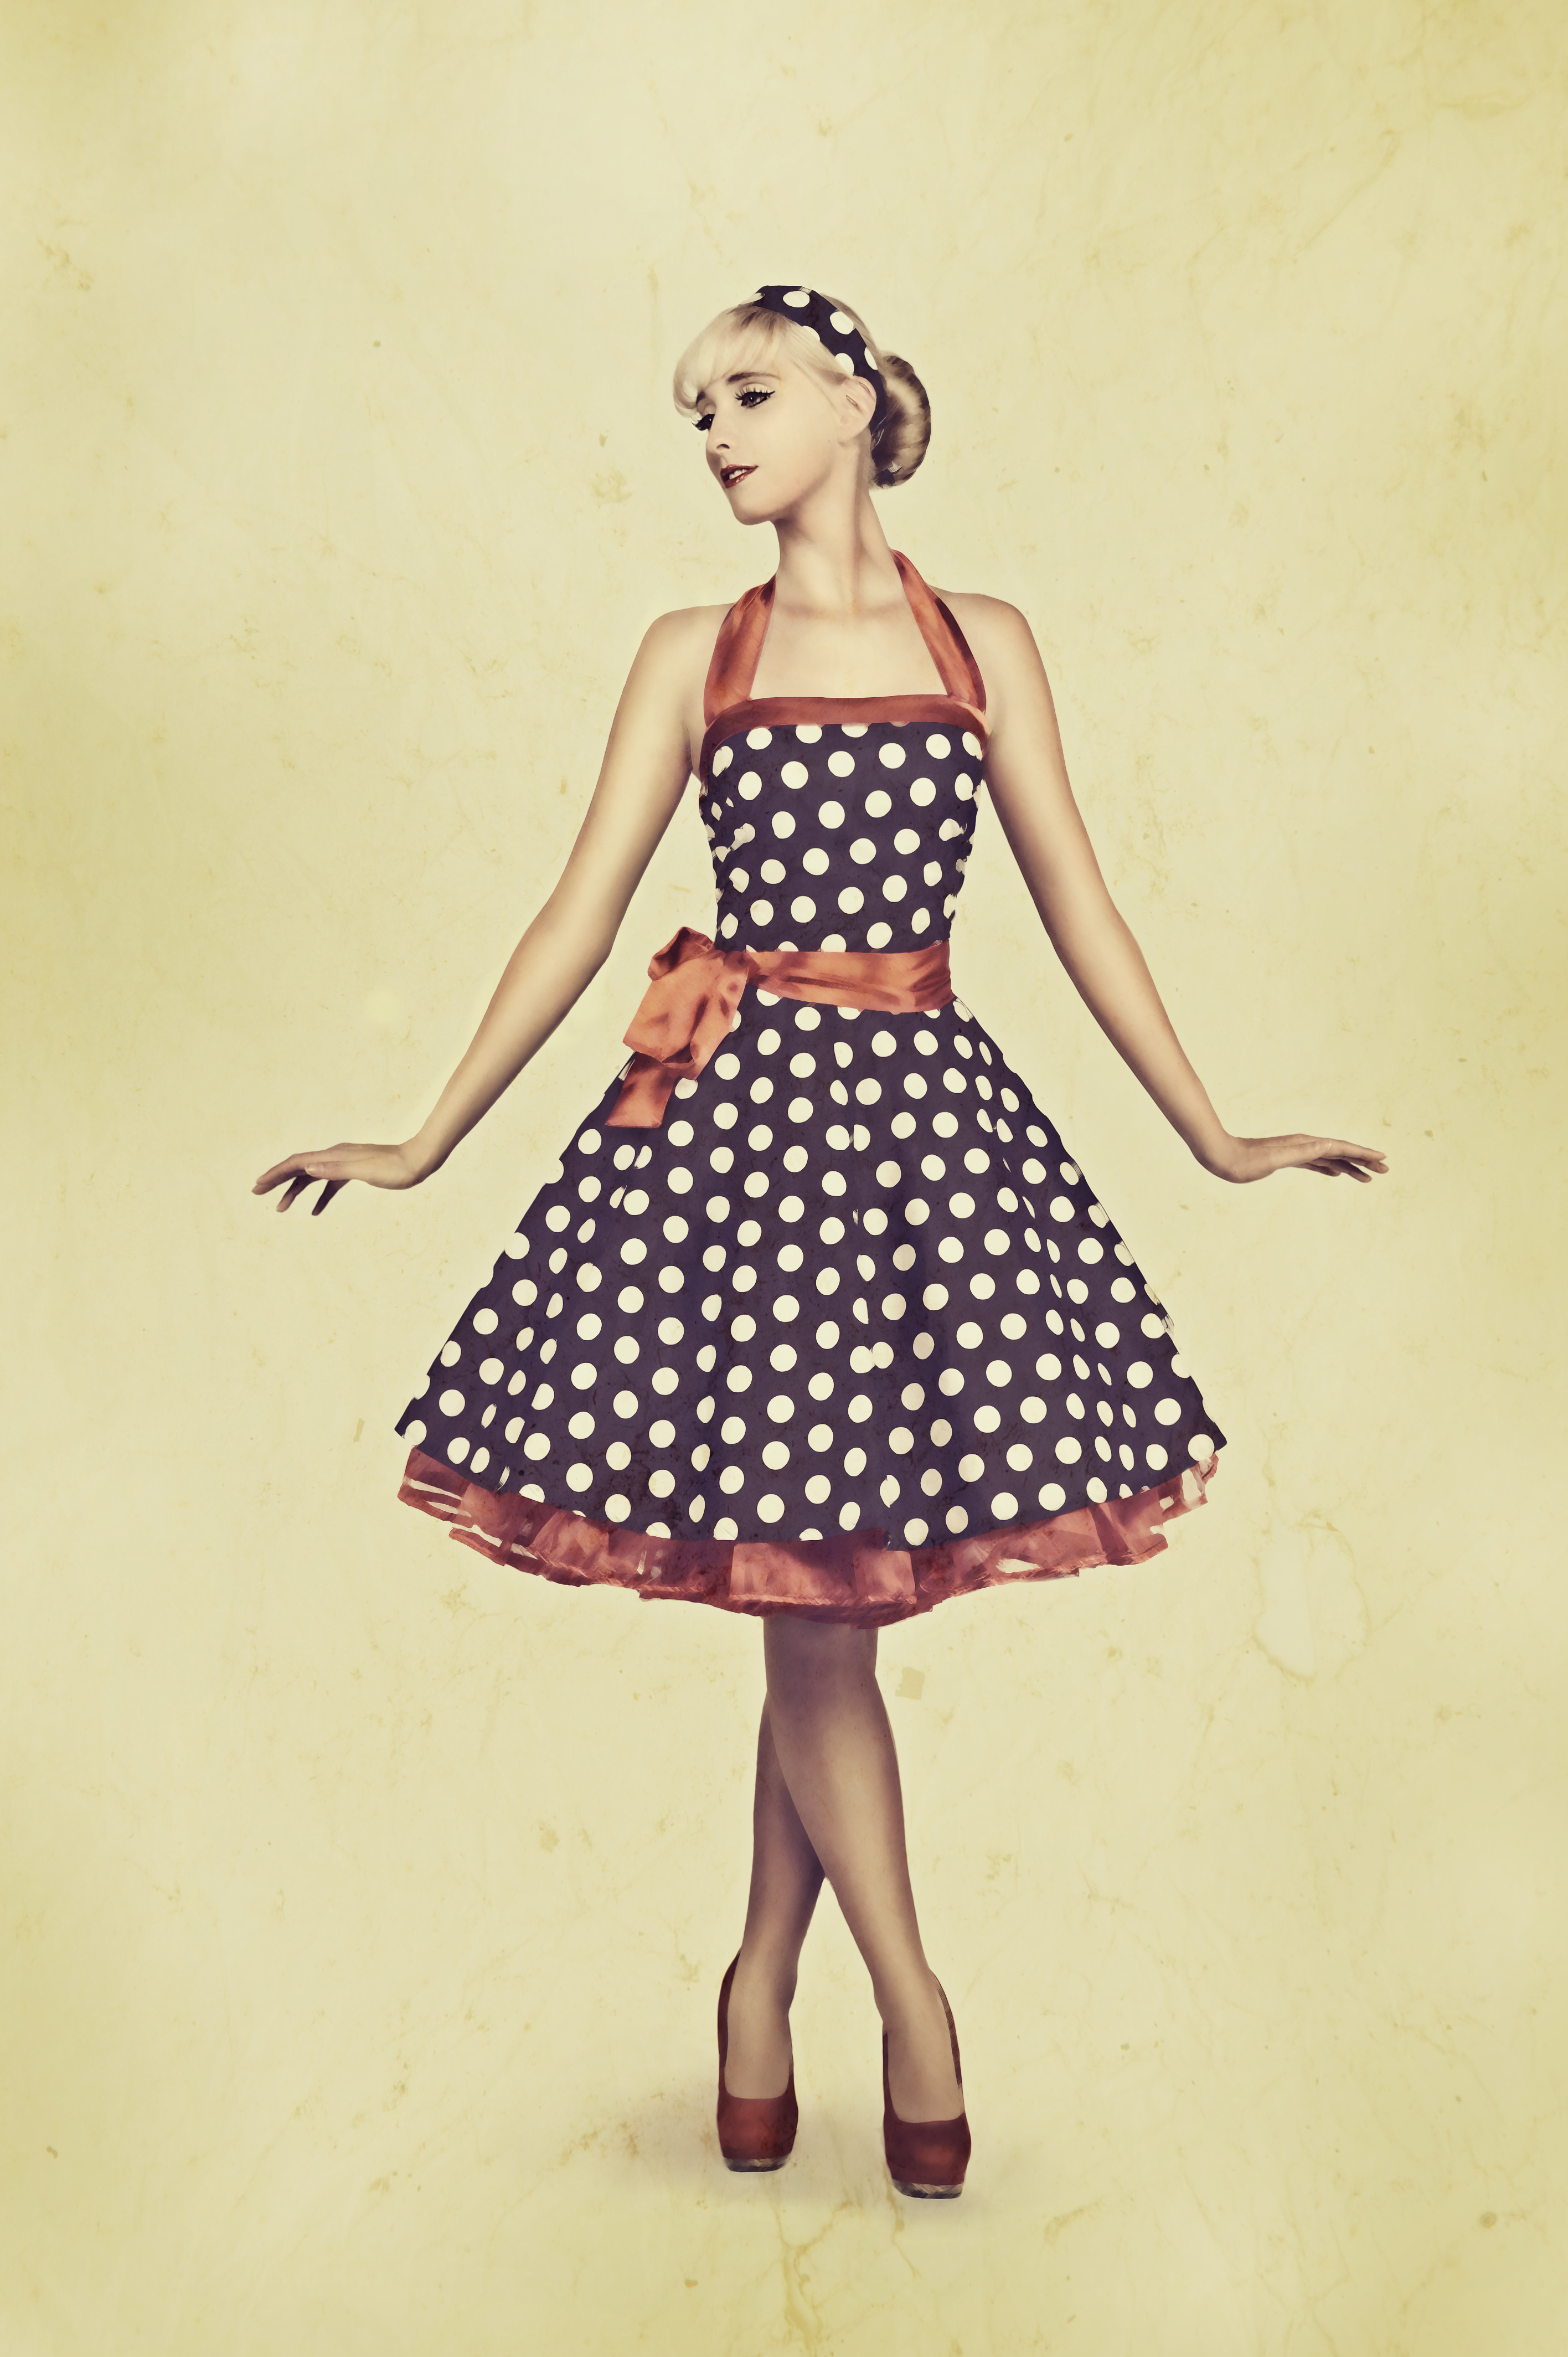 Pin Up Girl With Vintage Texture By Datng8 On Deviantart